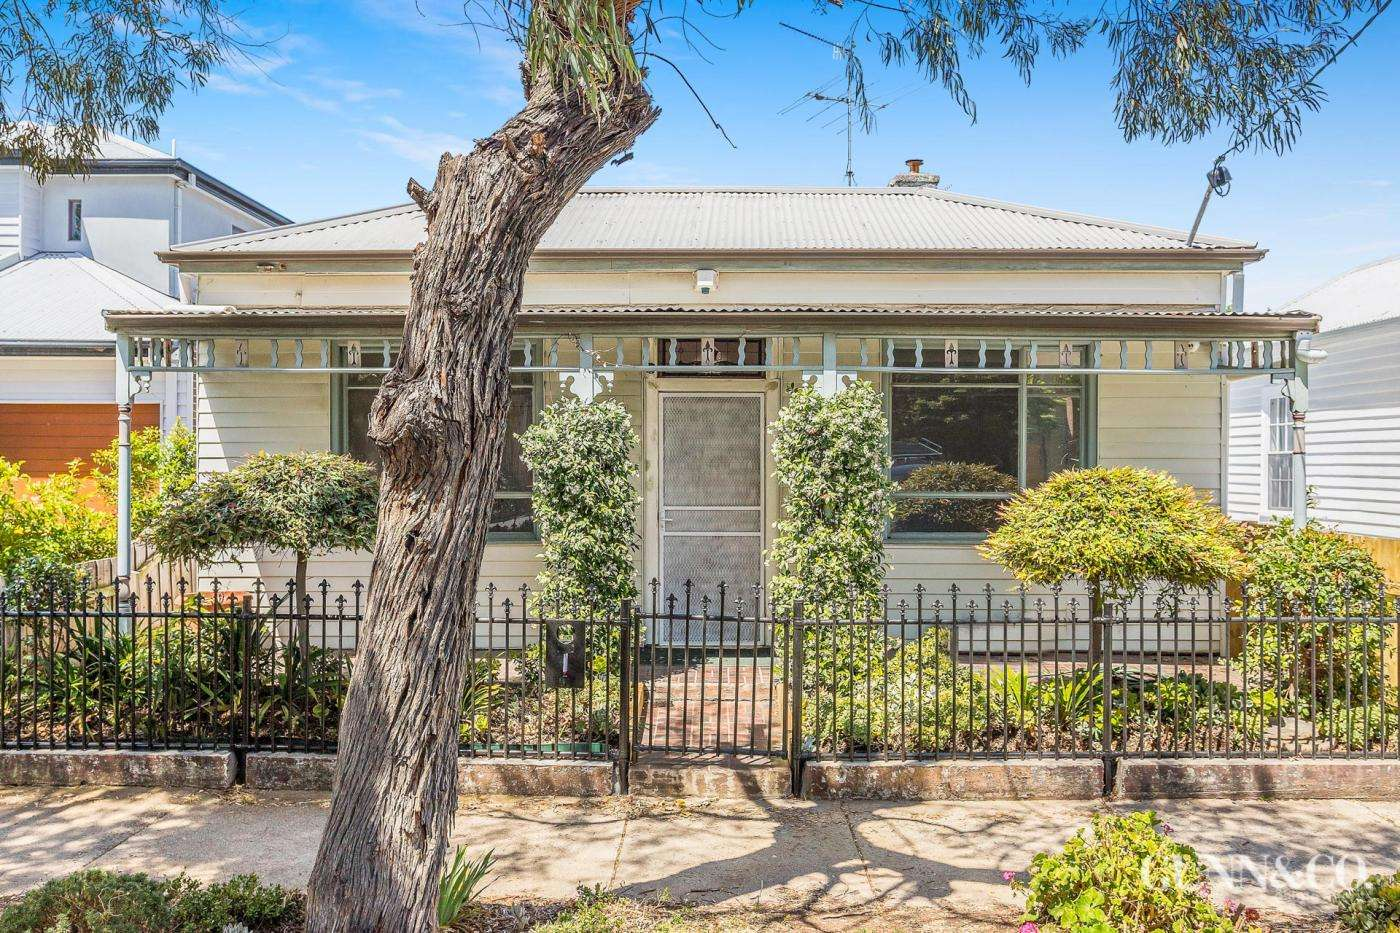 Main view of Homely house listing, 91 Osborne Street, Williamstown, VIC 3016